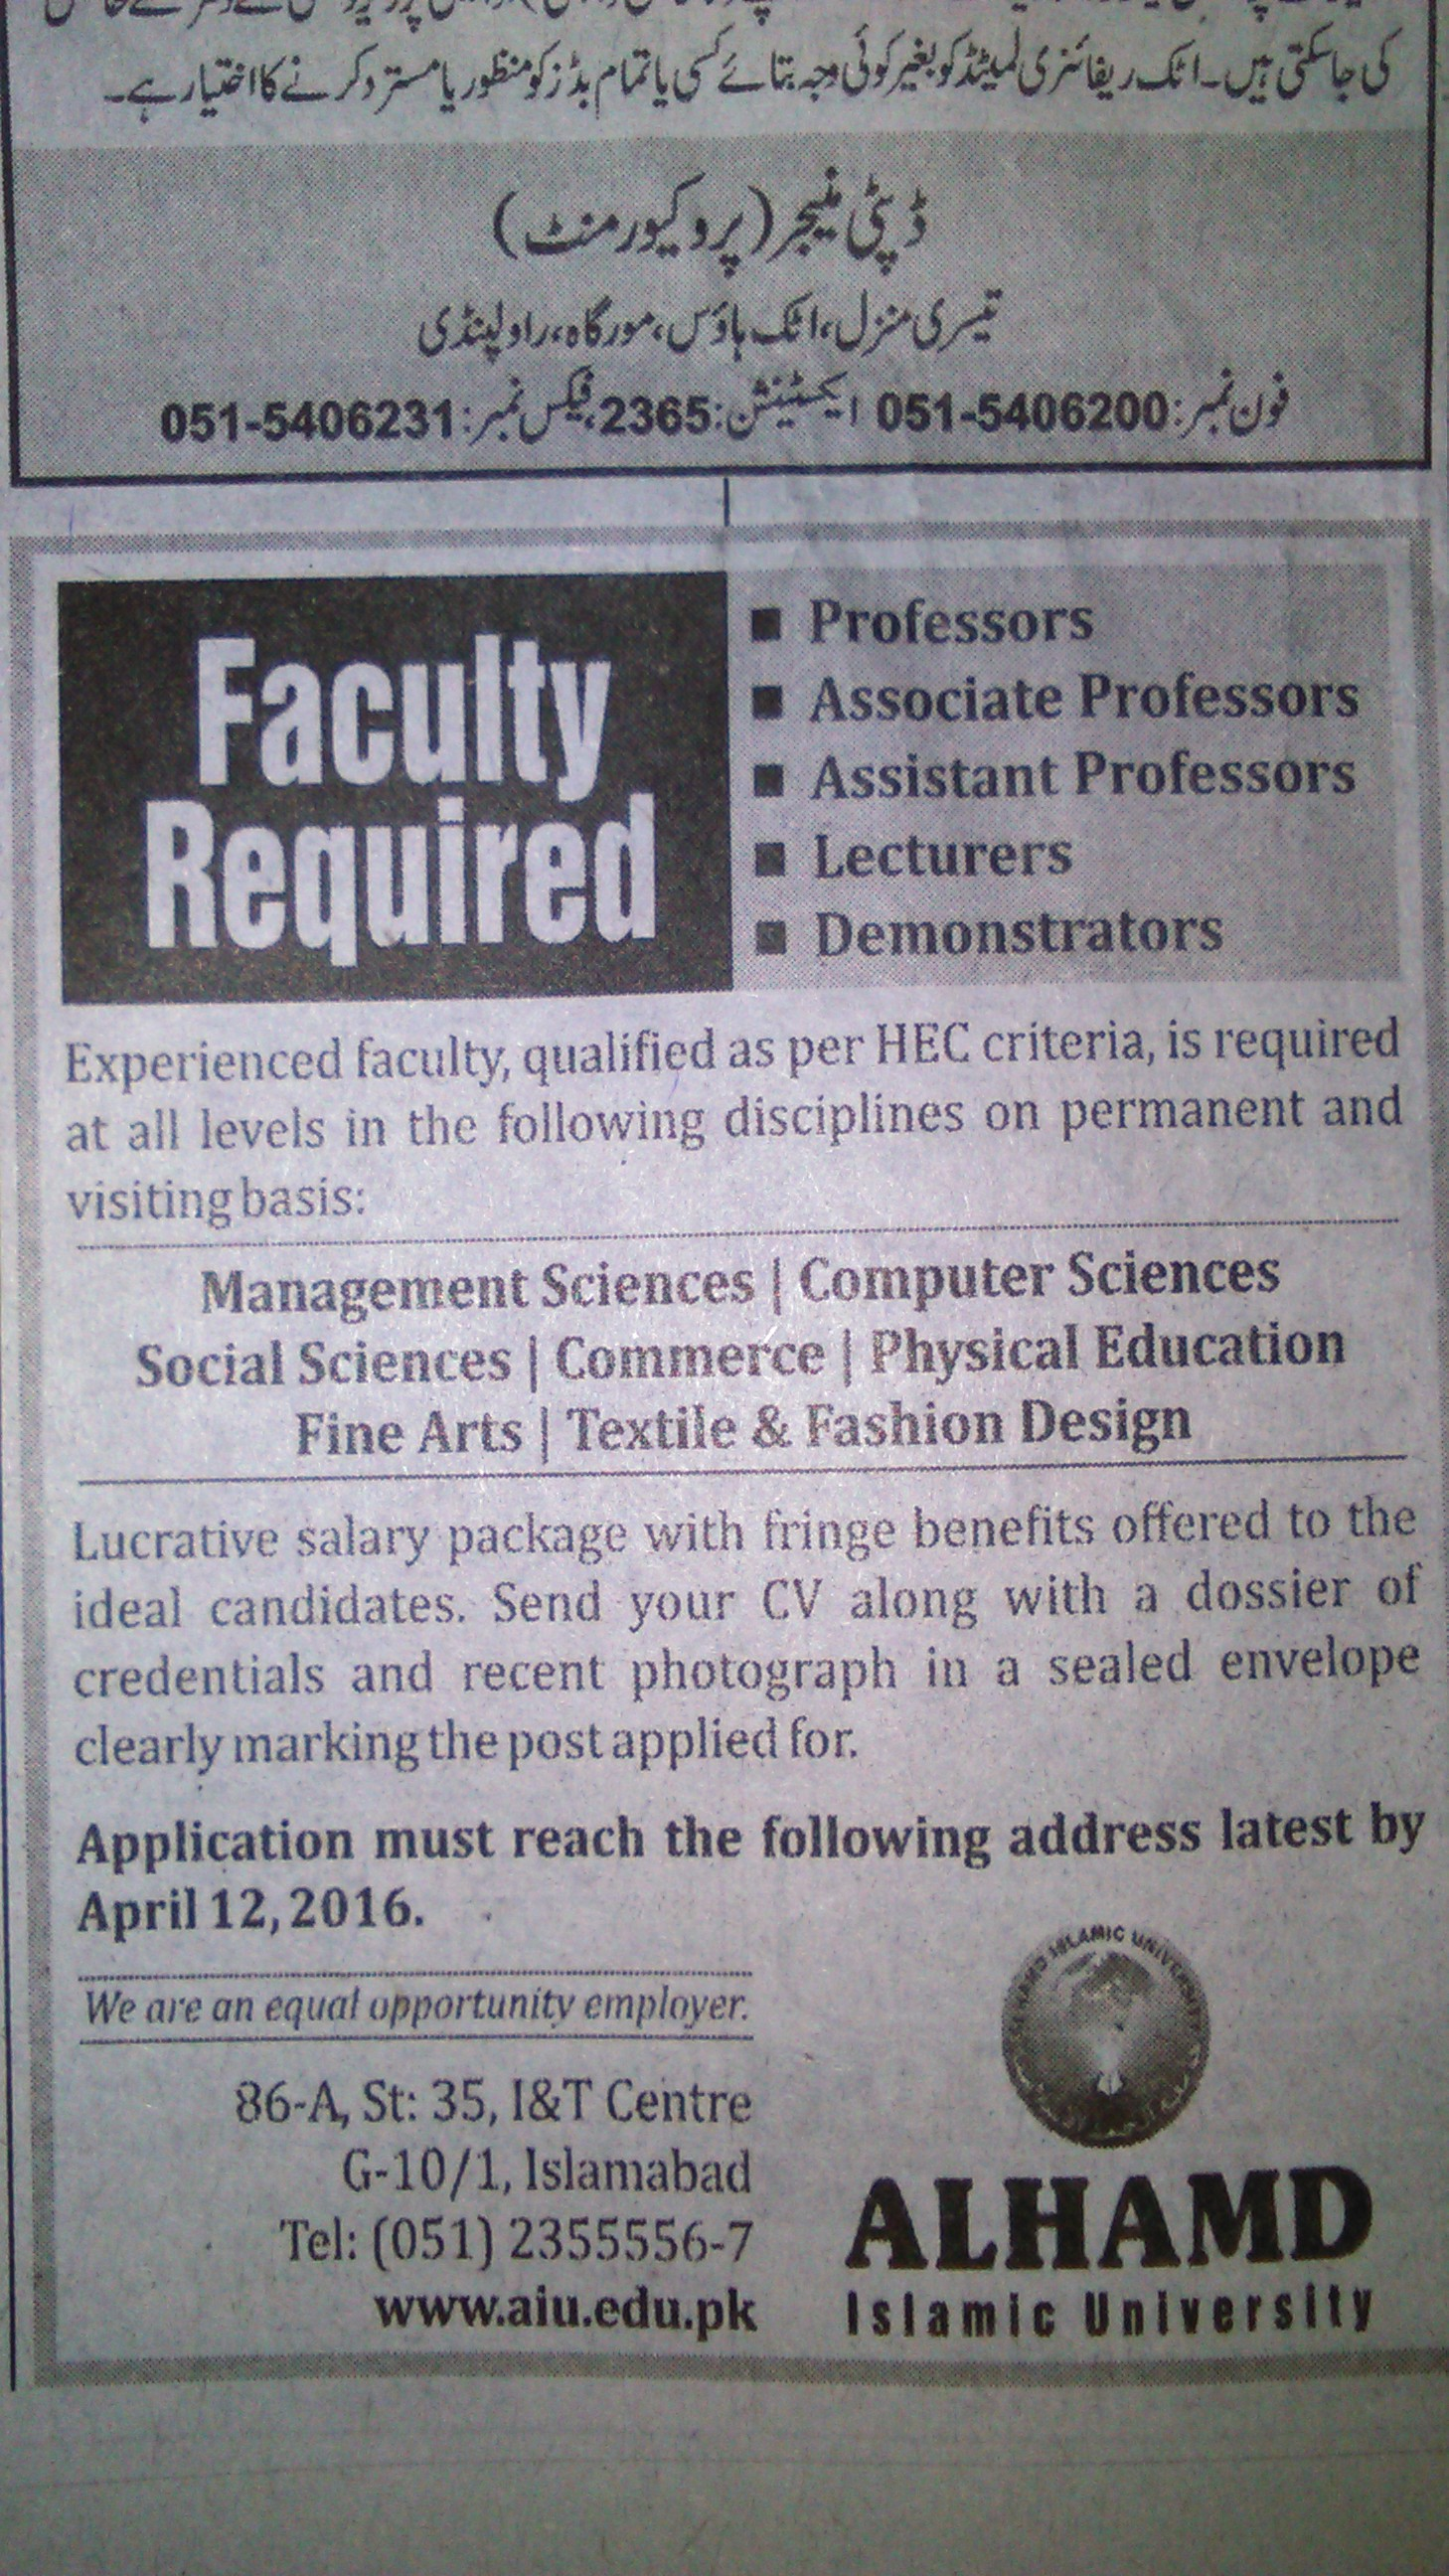 Faculty Required Alhamd Islamic University Islamabad